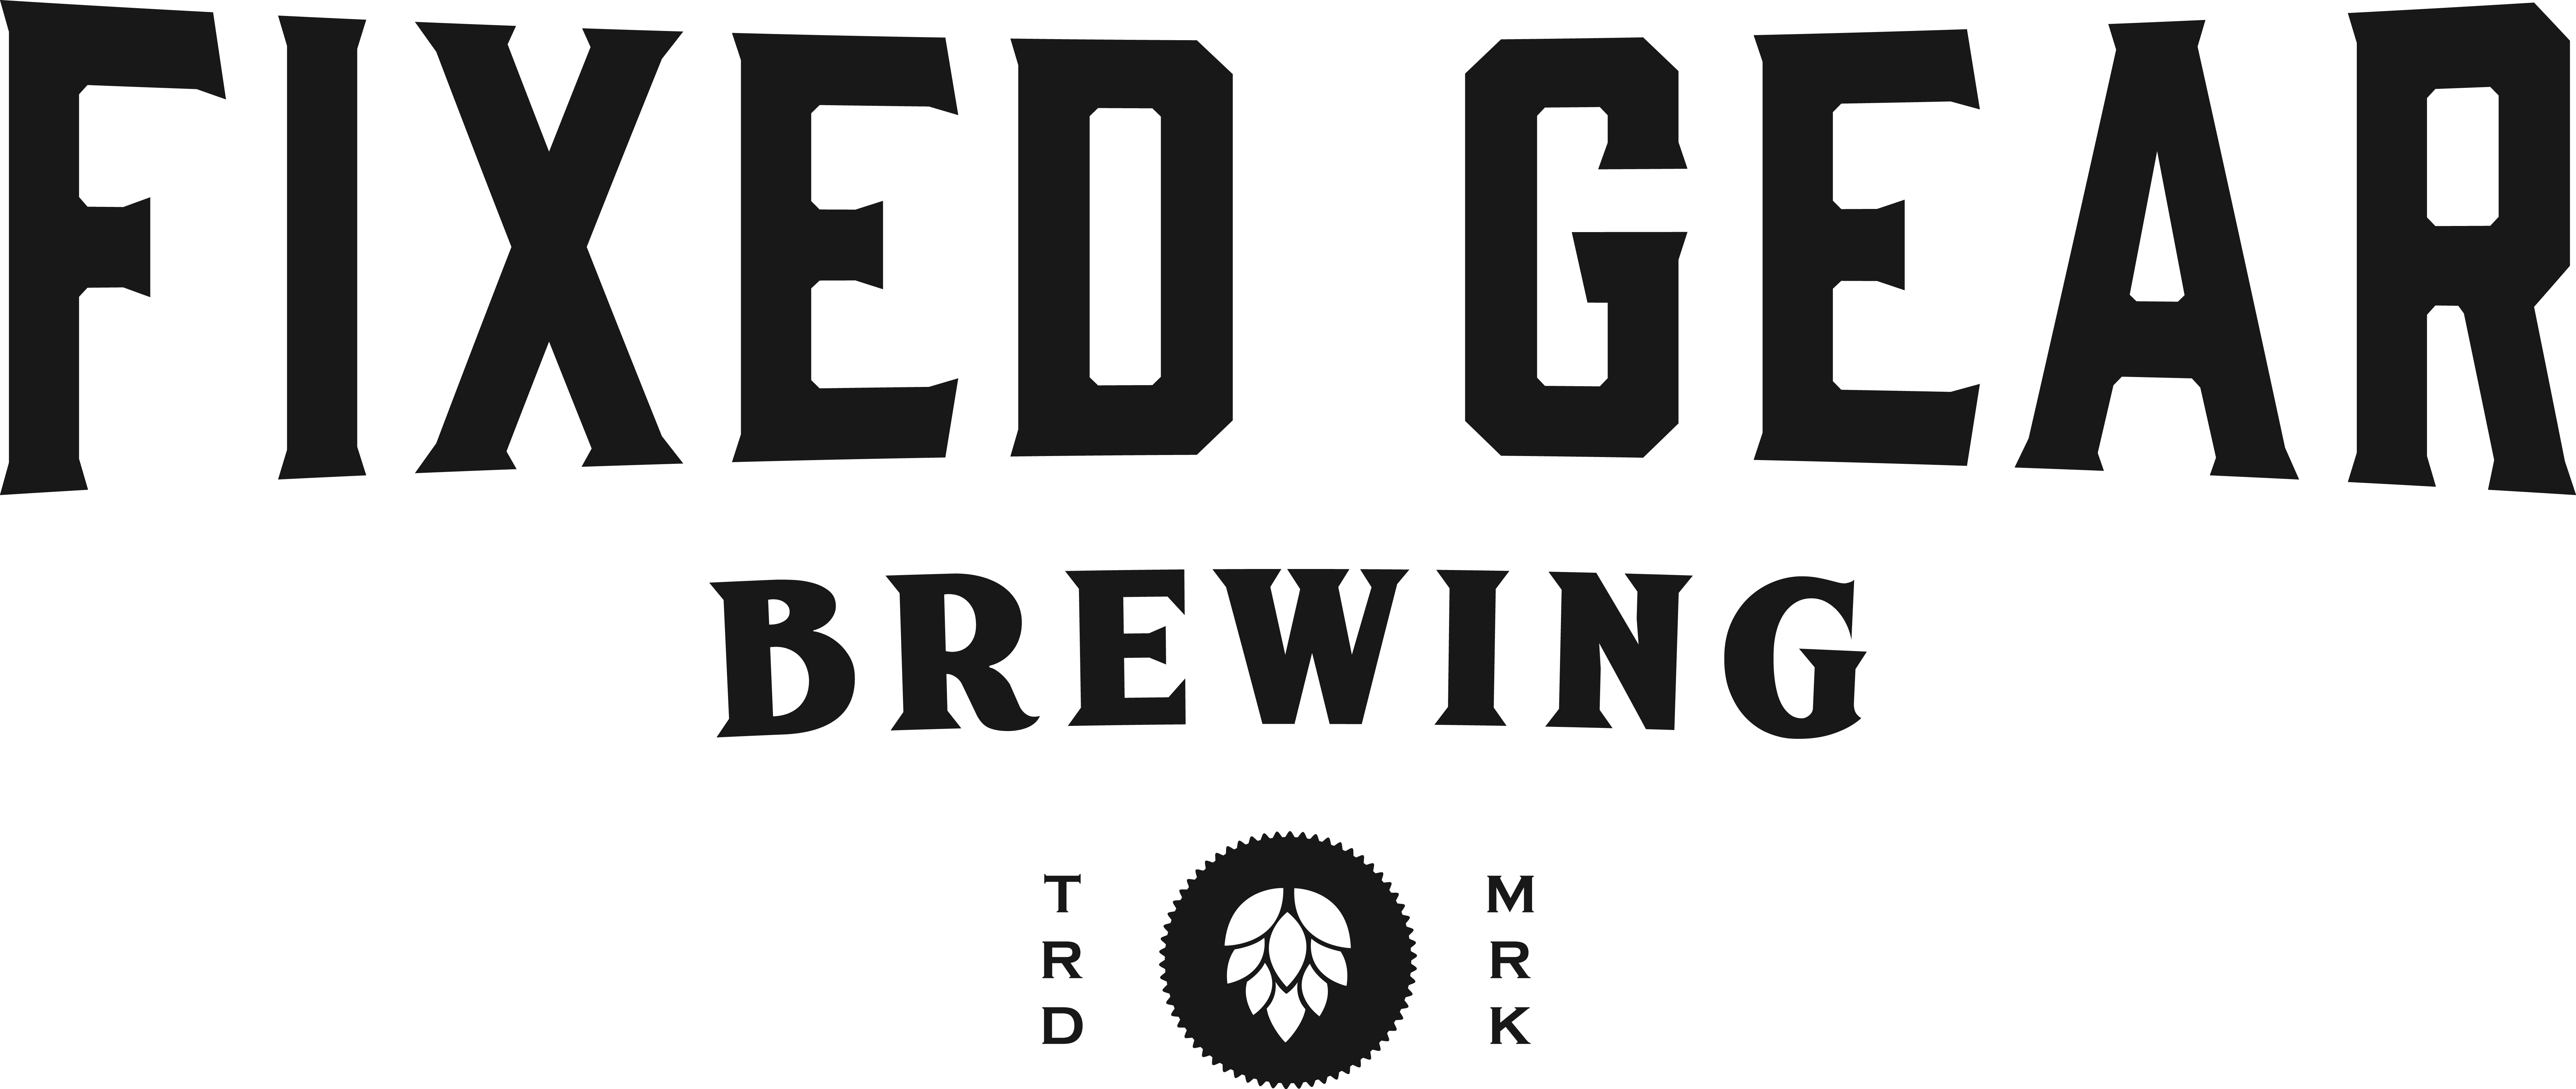 Craft Brewery Logo with Bicycle Theme